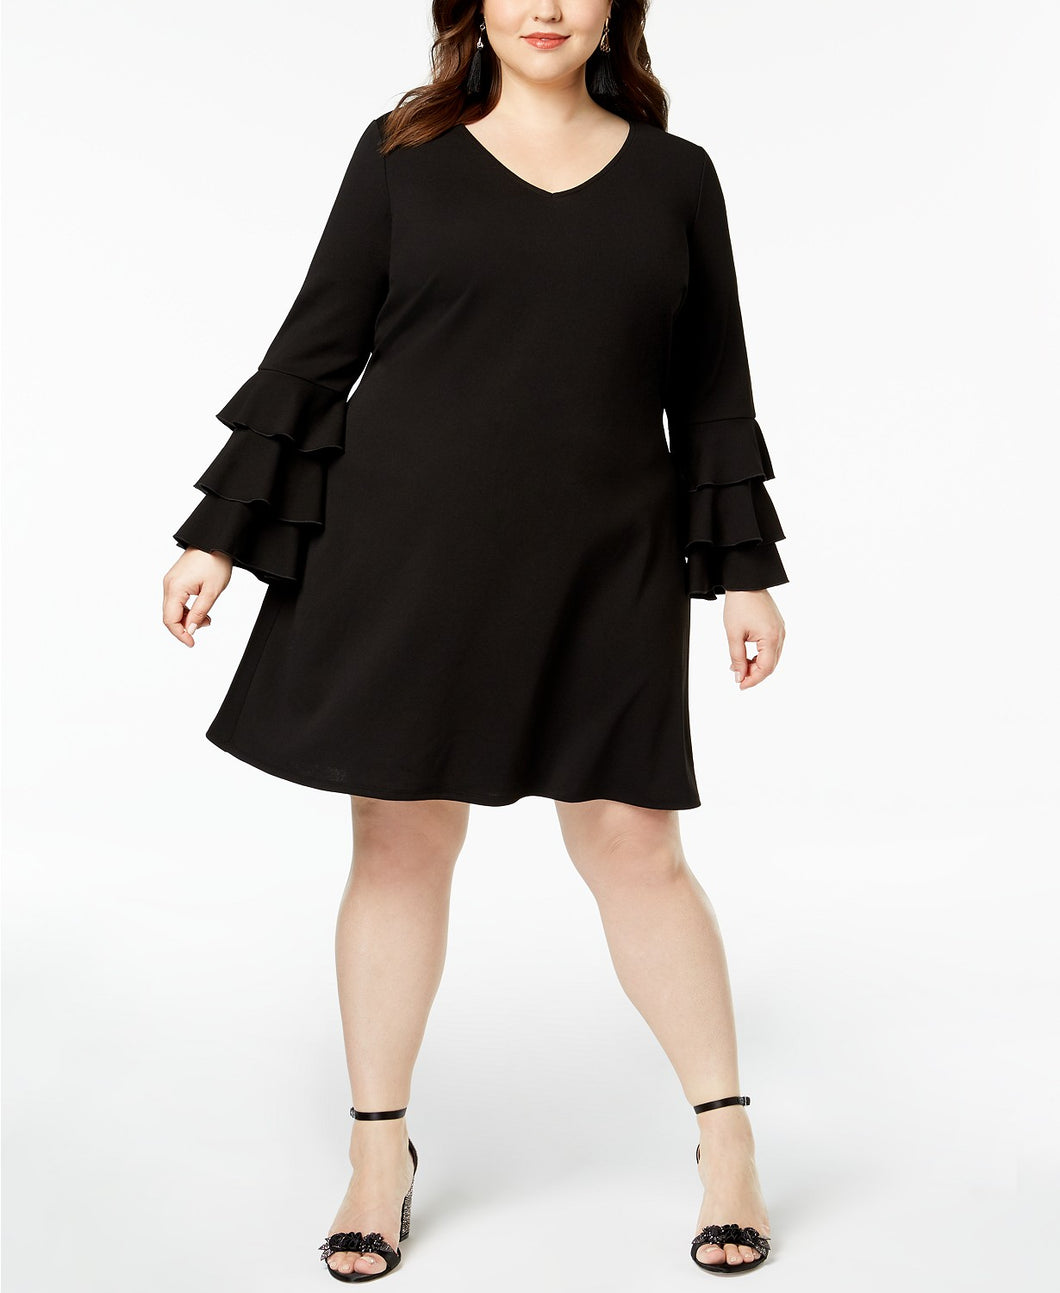 Love Squared Trendy Plus Size Tiered Bell Sleeve Dress 2X